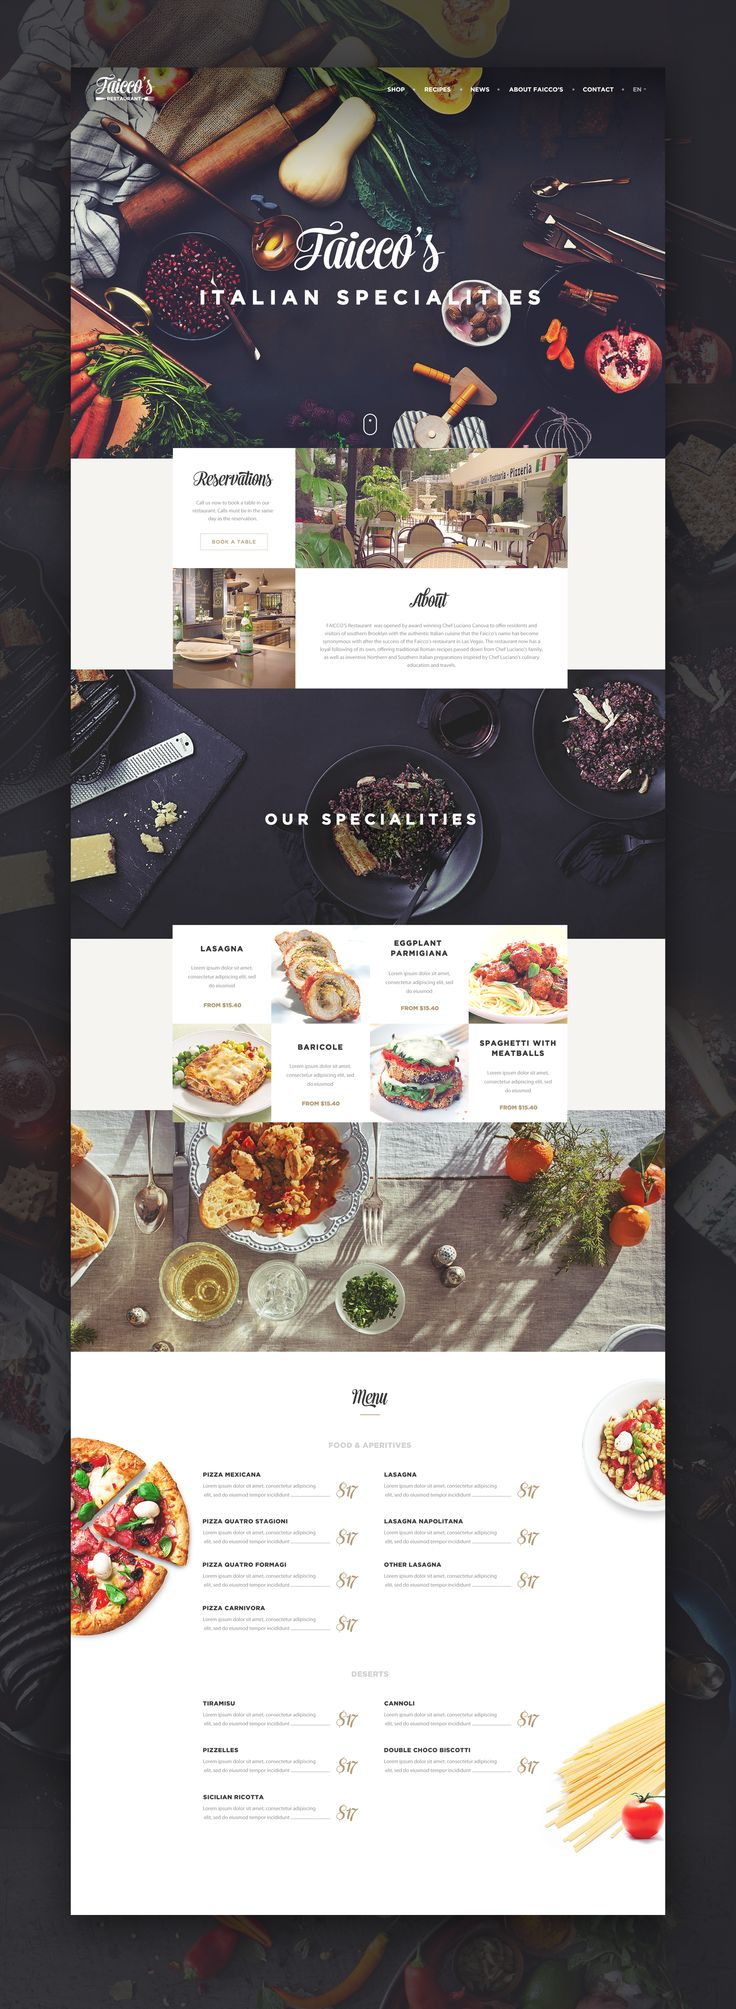 Faicco's italian Restaurant website restyling. Ui design concept by Virgil Pana…